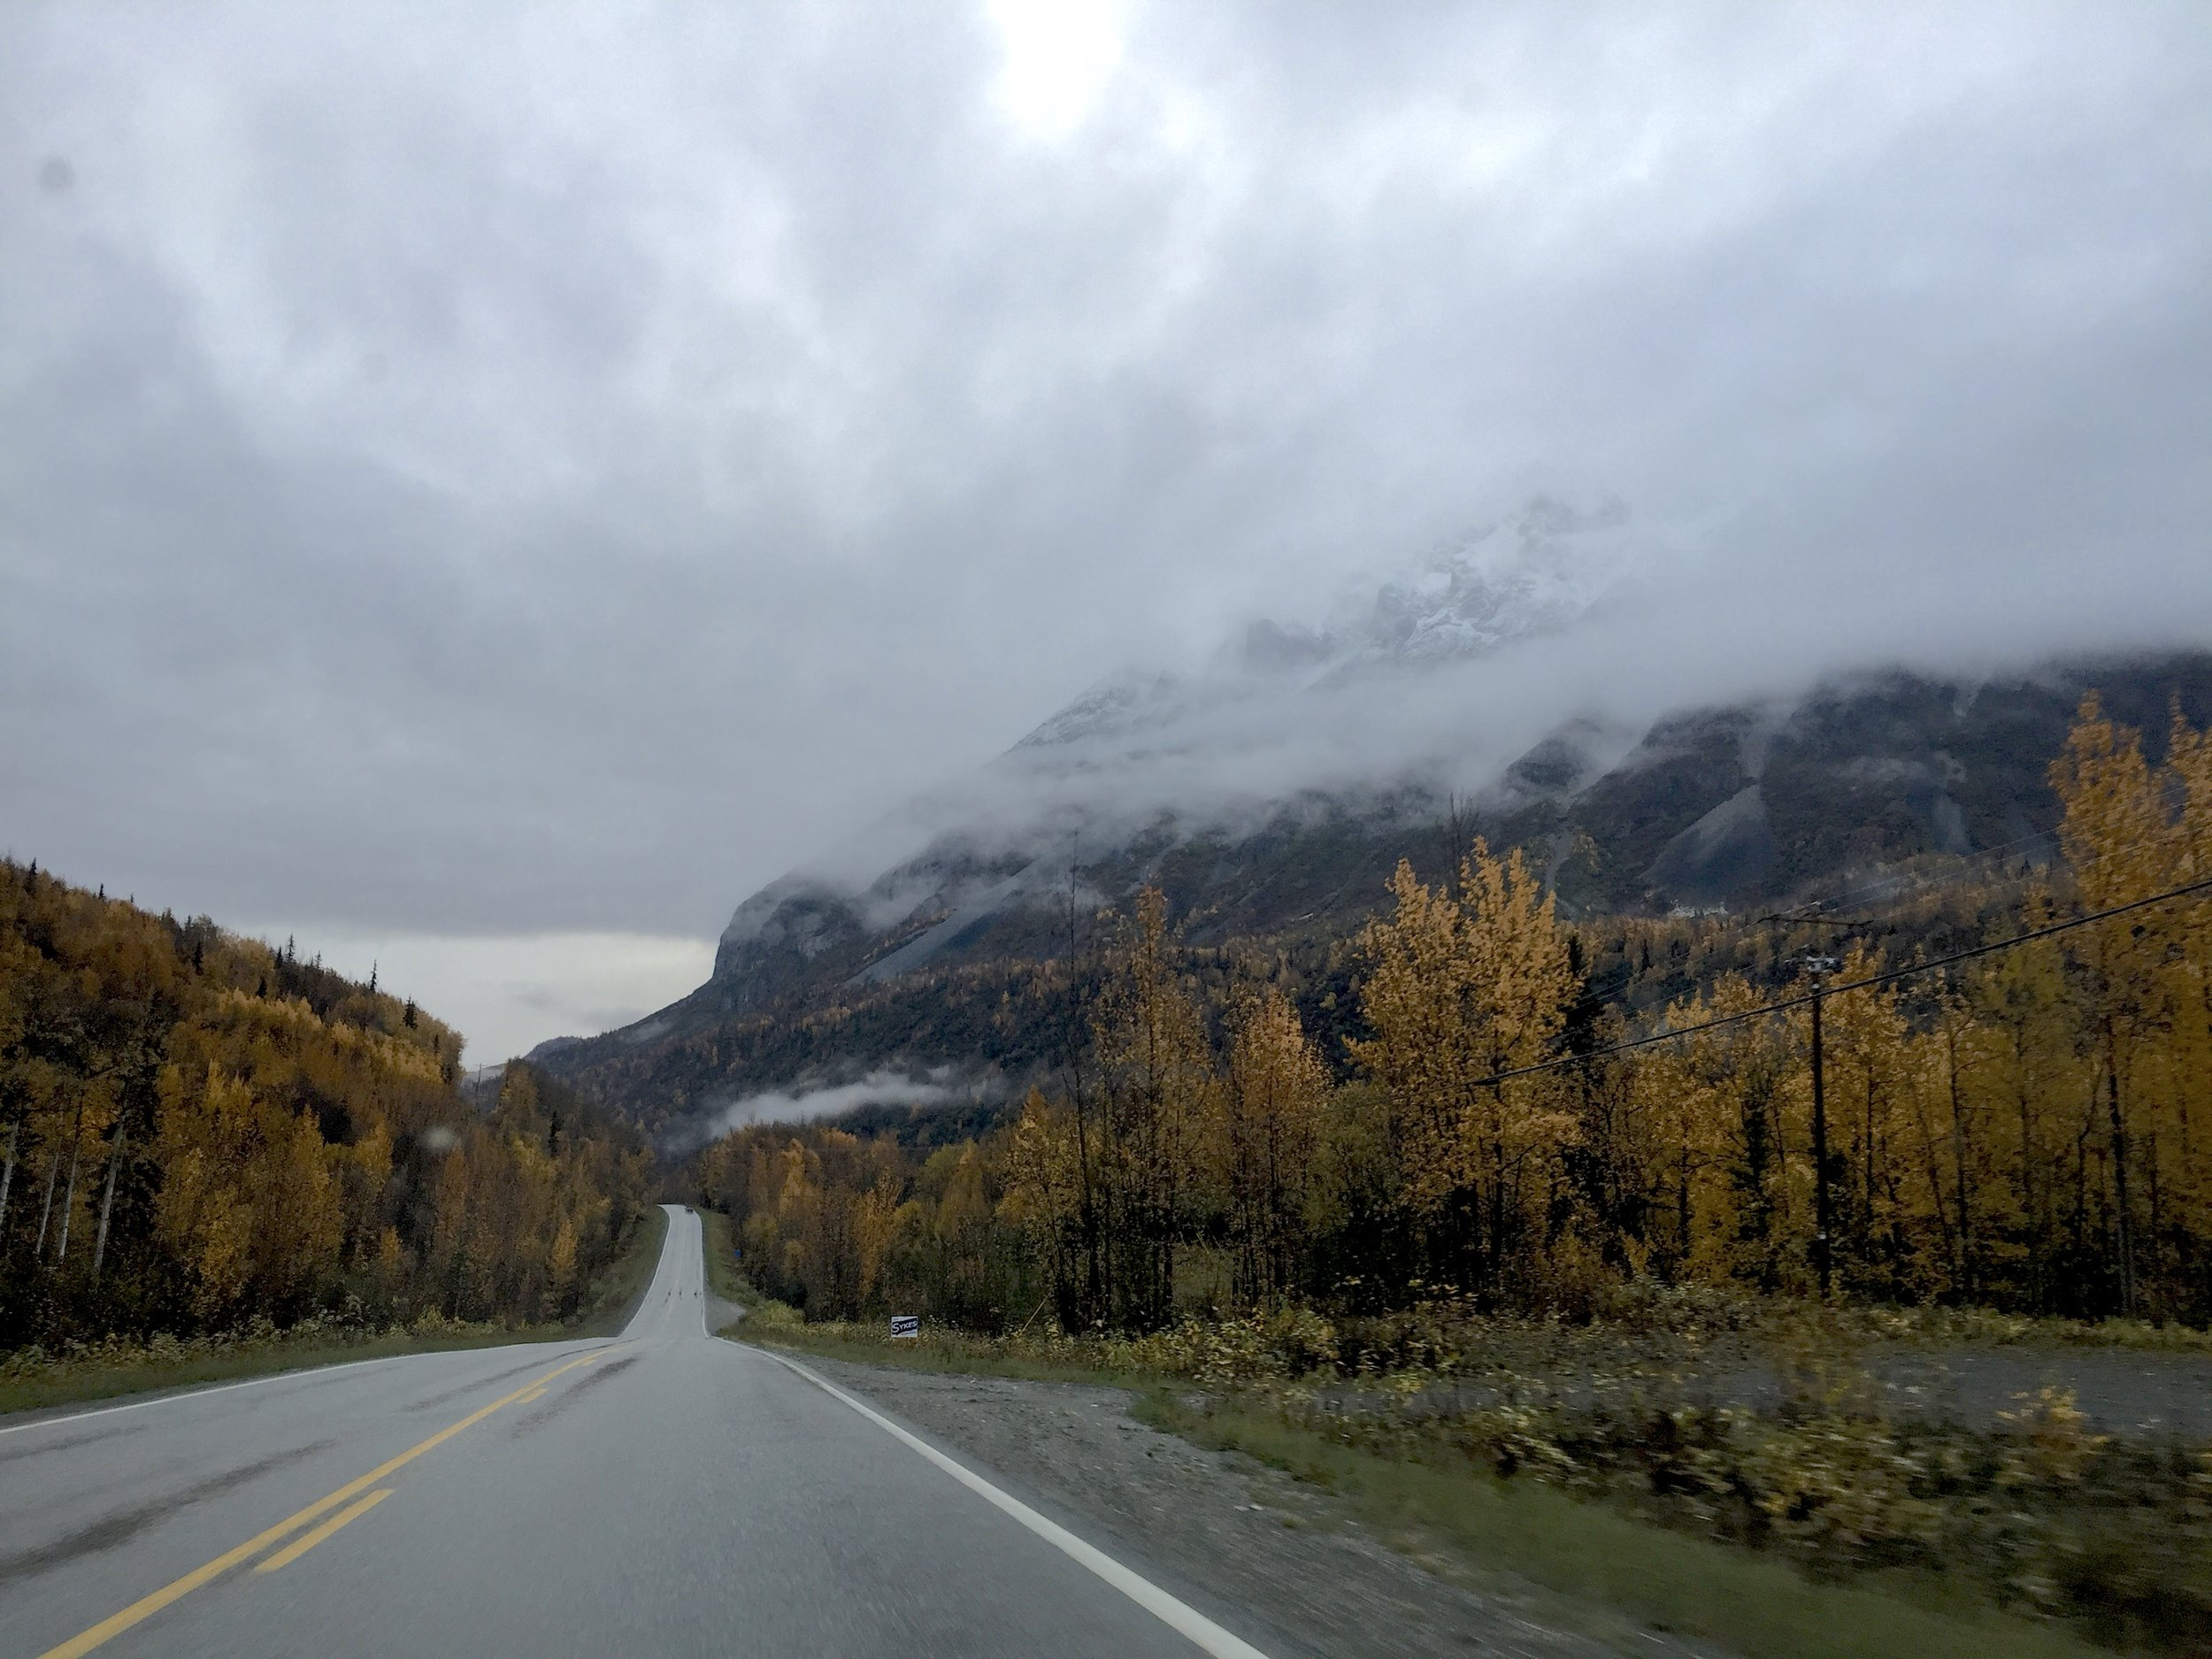 Even a quick iPhone shot captures the beautiful fall colors of Aspen and Poplar trees along the Glenn Highway